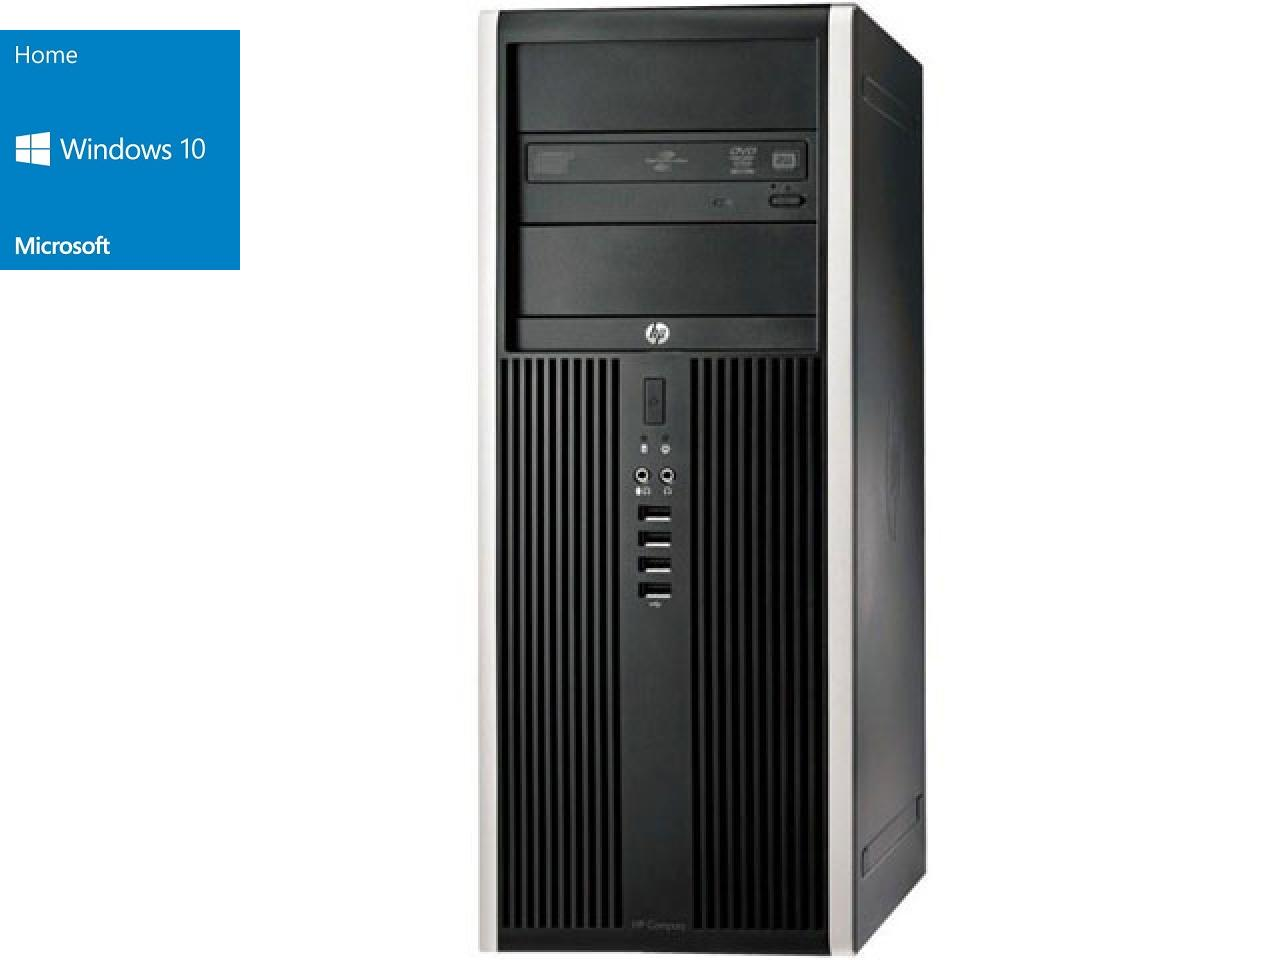 Hewlett Packard Elite 8200 T  - shop.bb-net.de